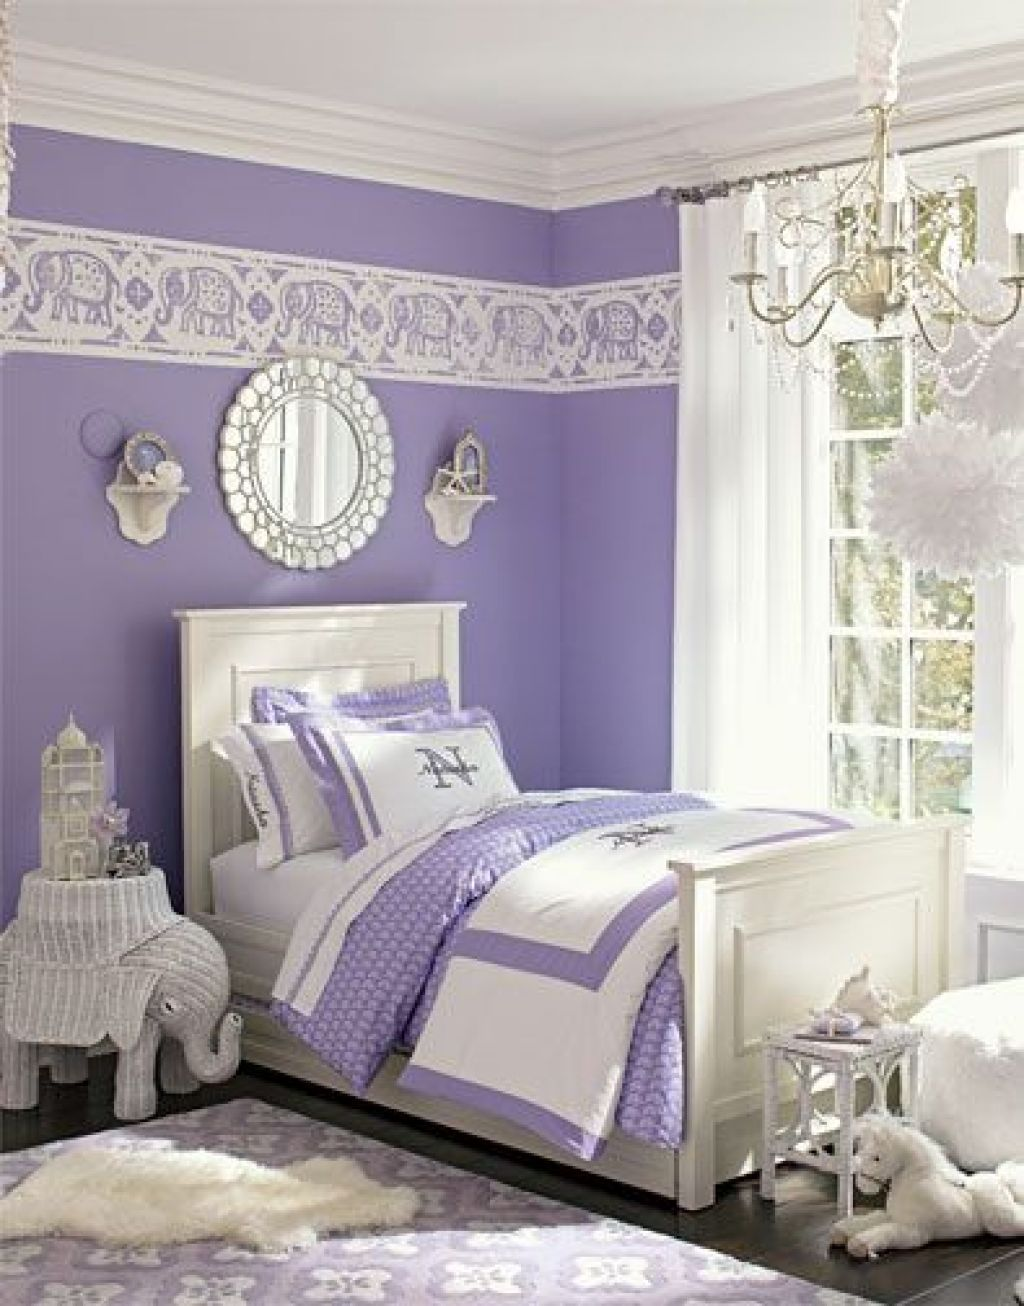 Bedroom designs for teenage girls purple - Bedroom Girl Purple Bedroom Ideas Teenage Girl Bedroom Ideas With Purple Color Wall And